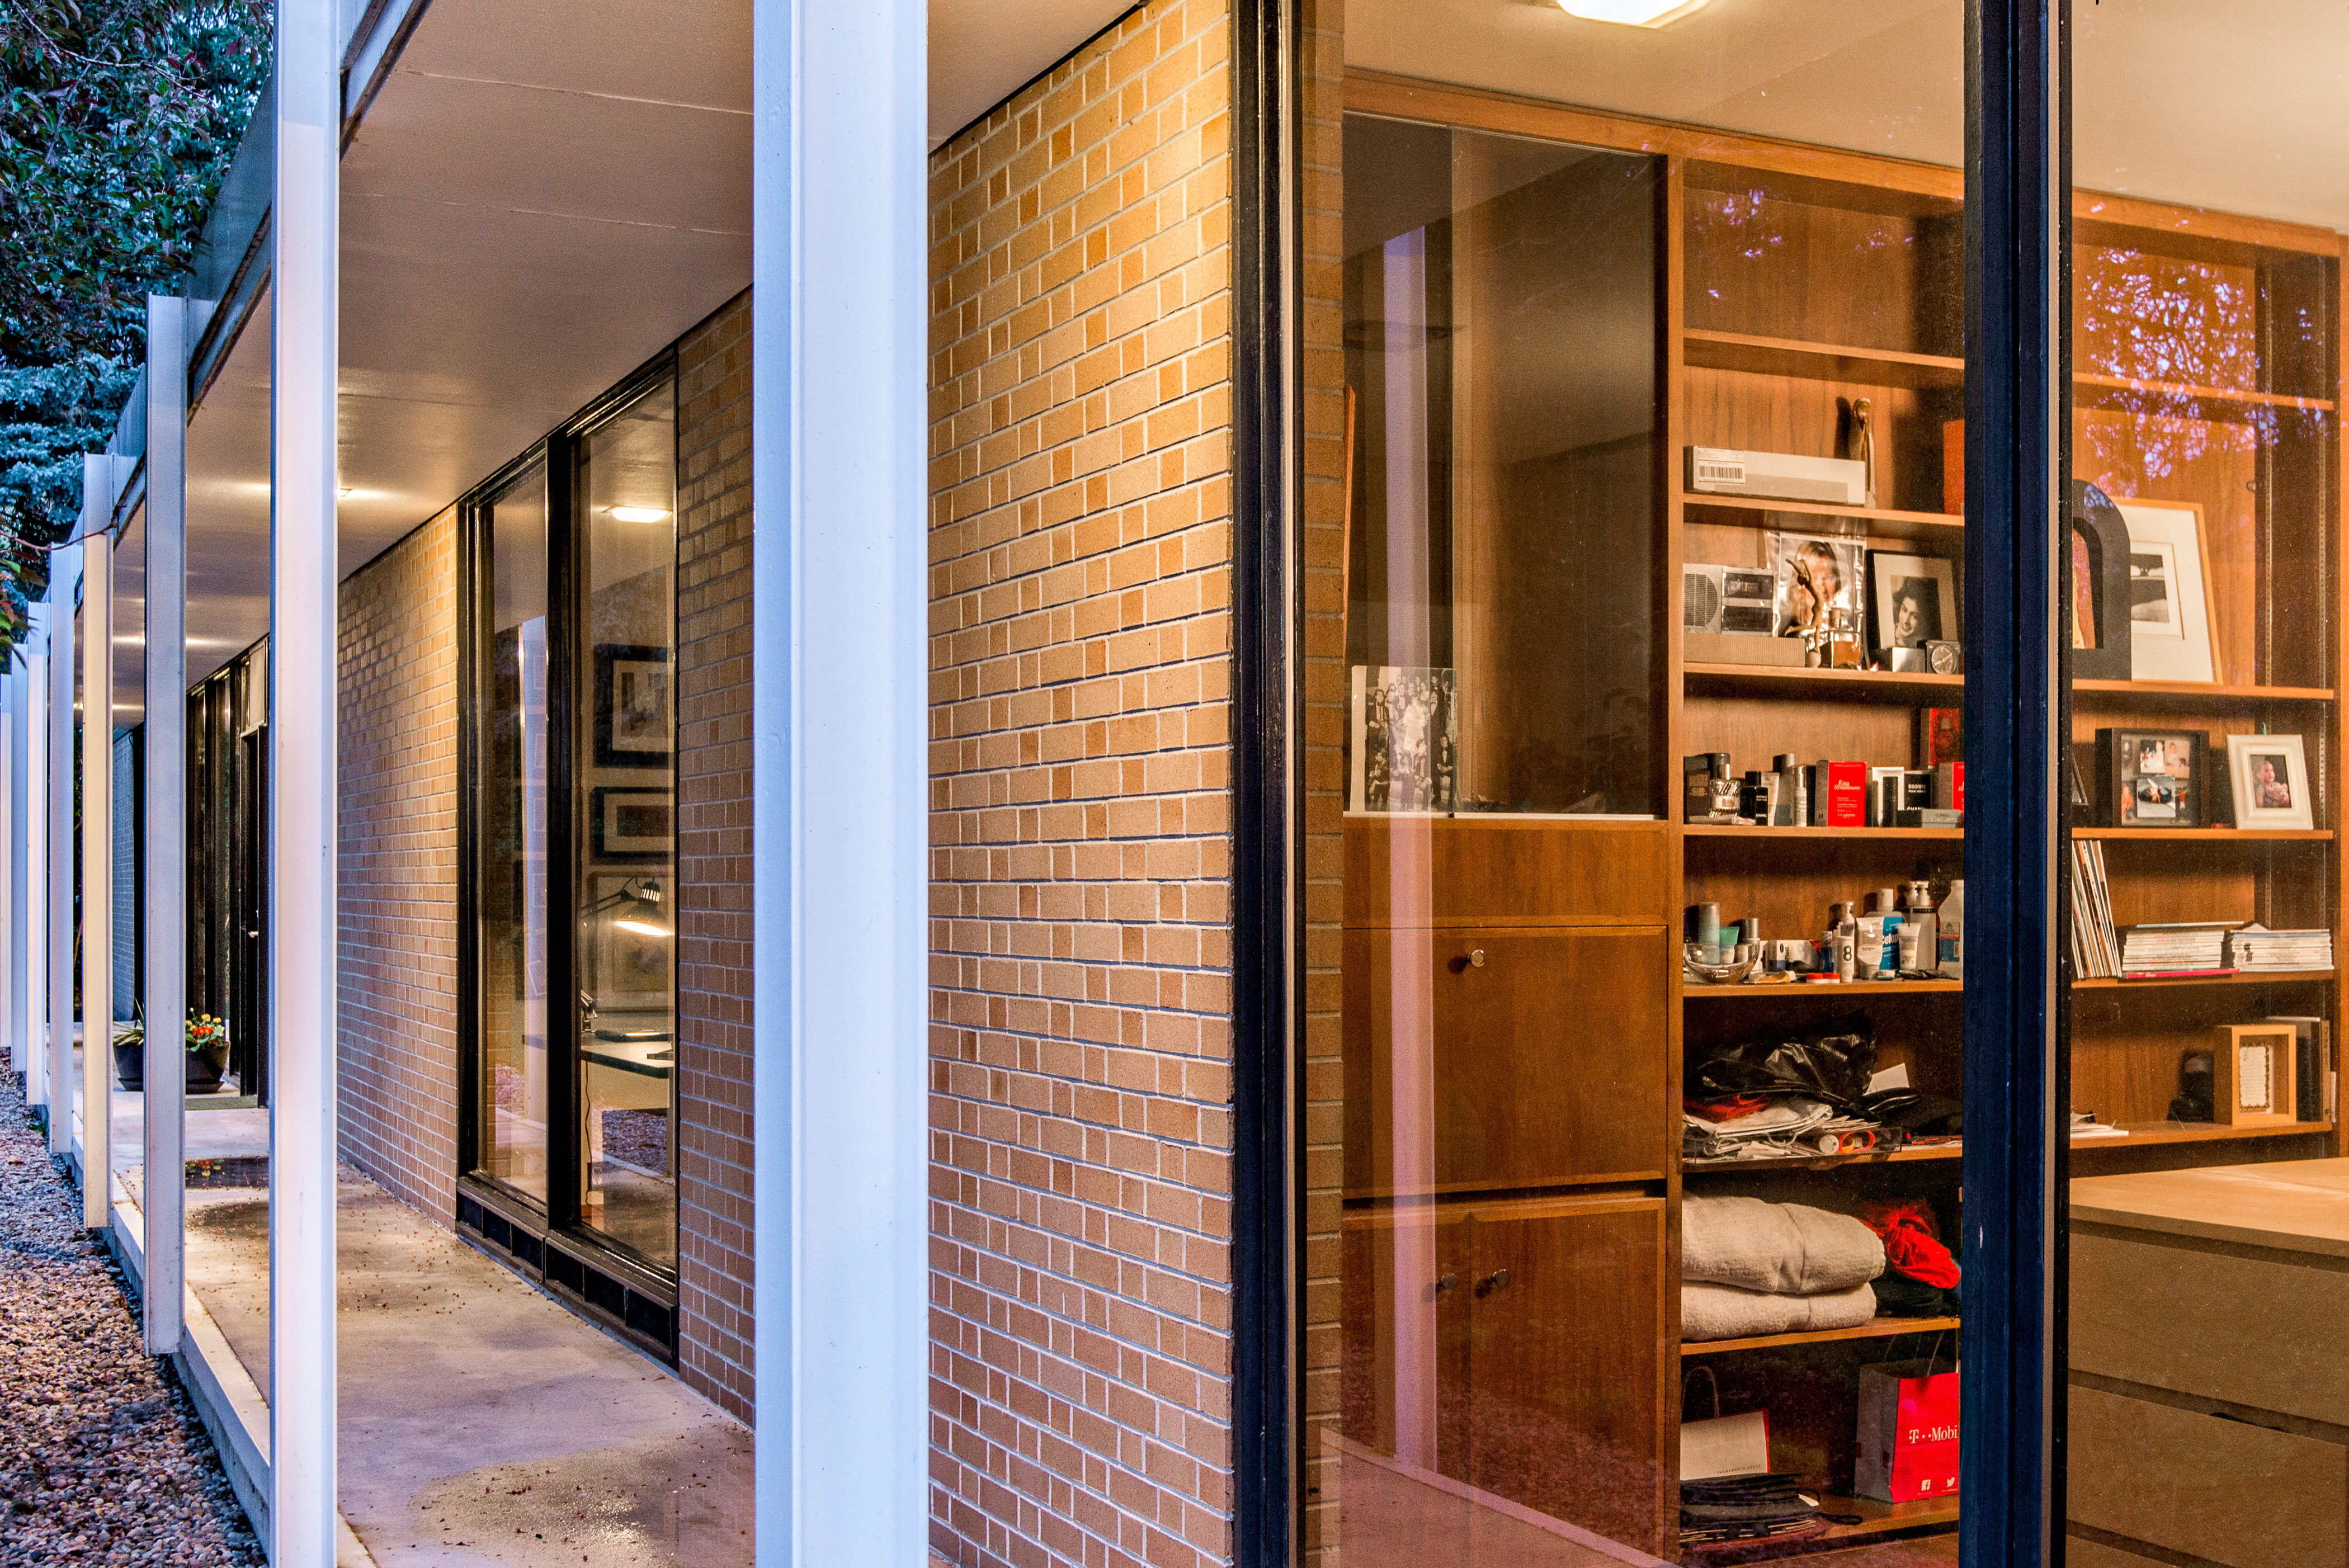 Midcentury home architects own glassbox gem asks 825K Curbed